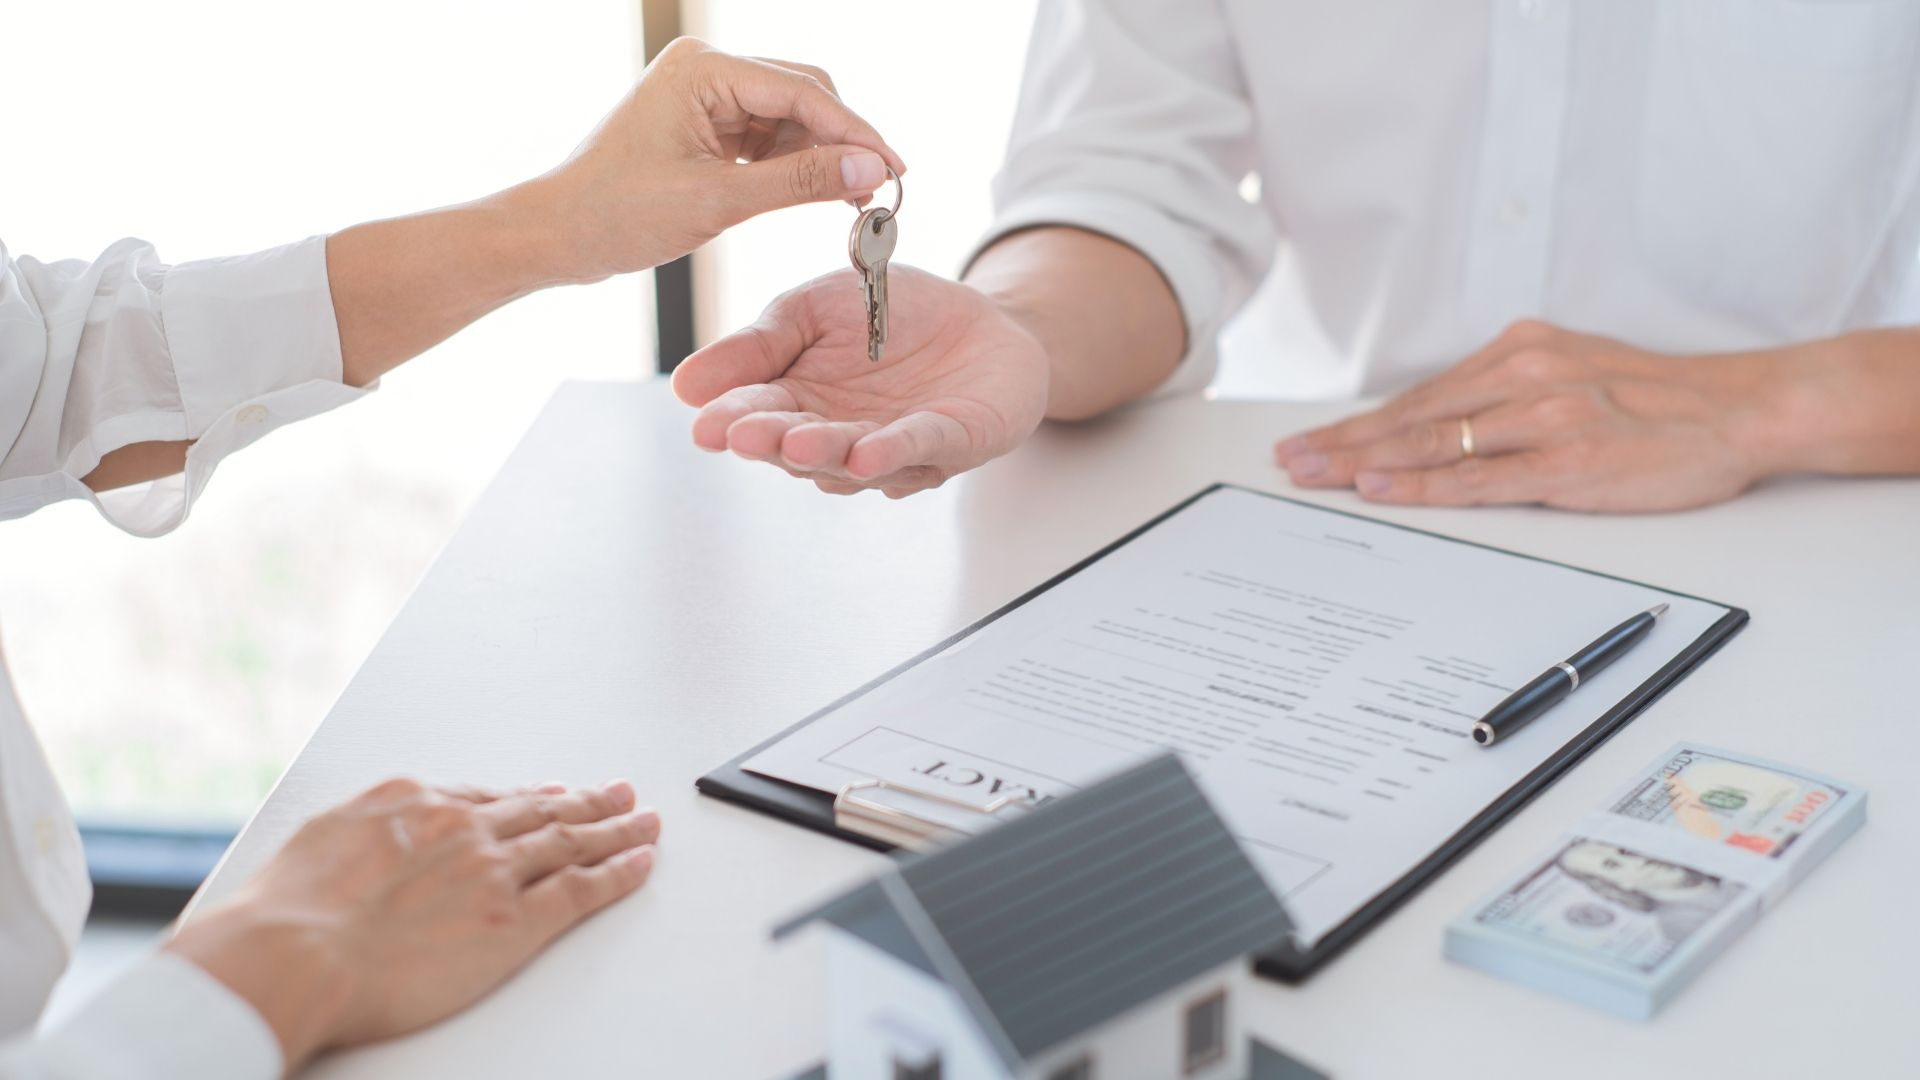 How to select the best real estate agent for you